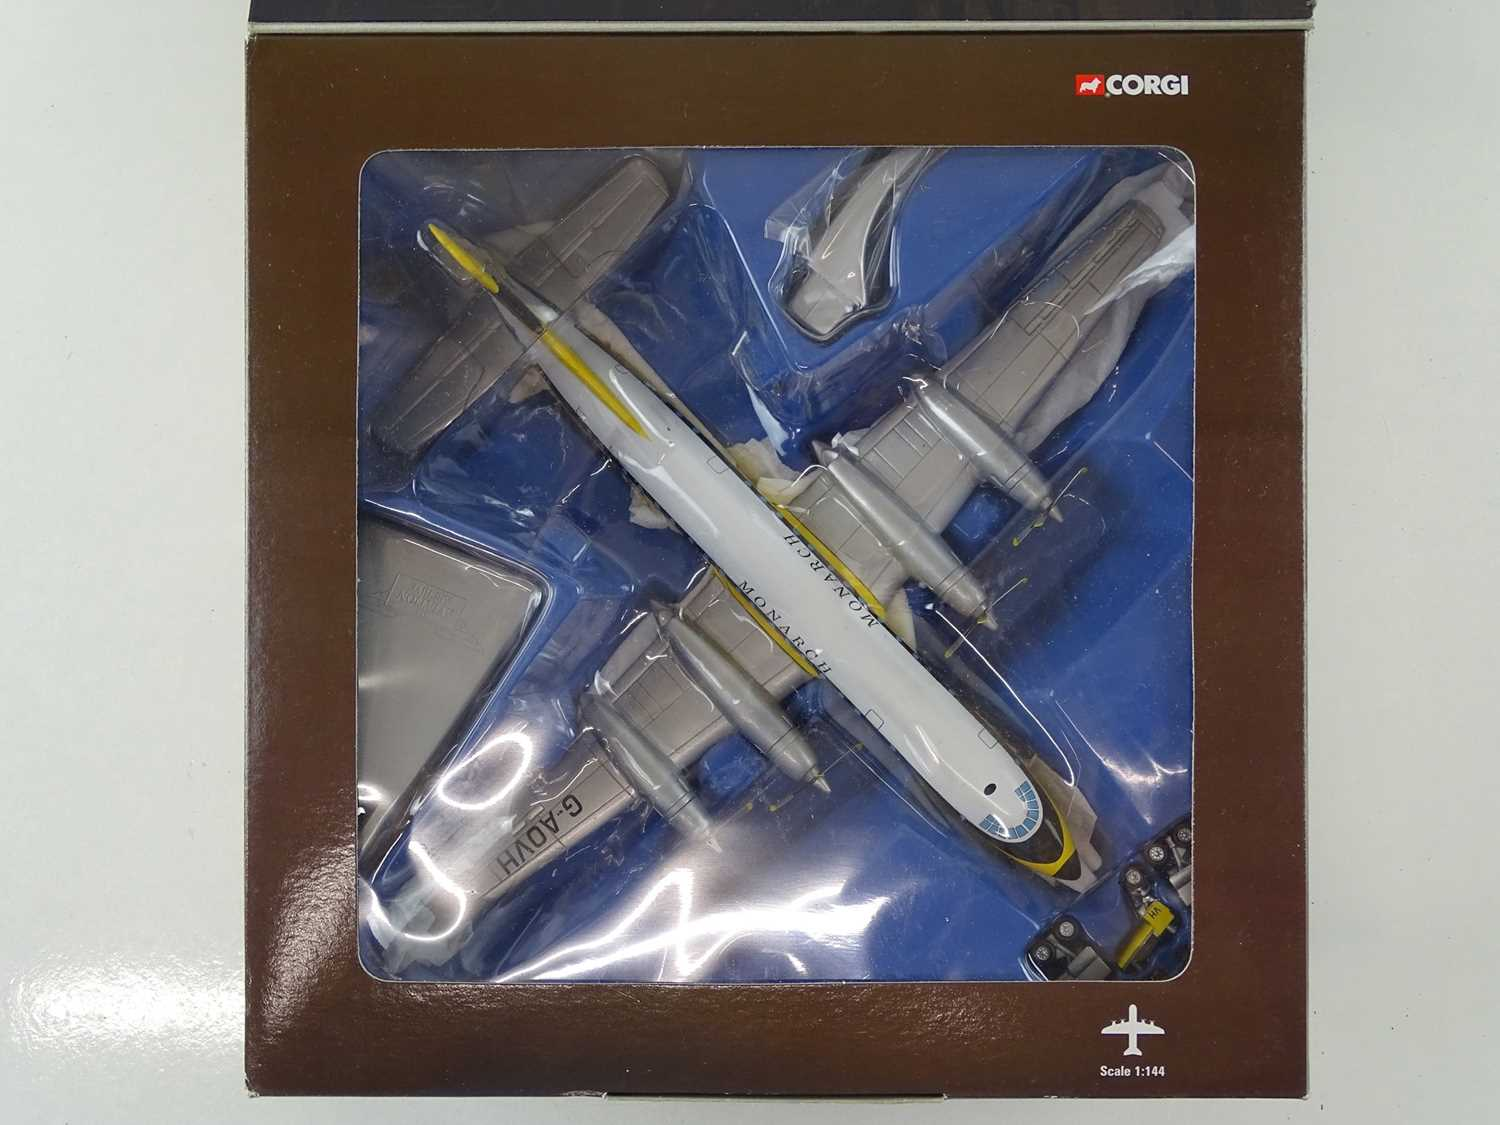 A group of CORGI AVIATION ARCHIVE 1:144 scale Classic Propliners Series Propellor Aircraft - VG in G - Image 3 of 10